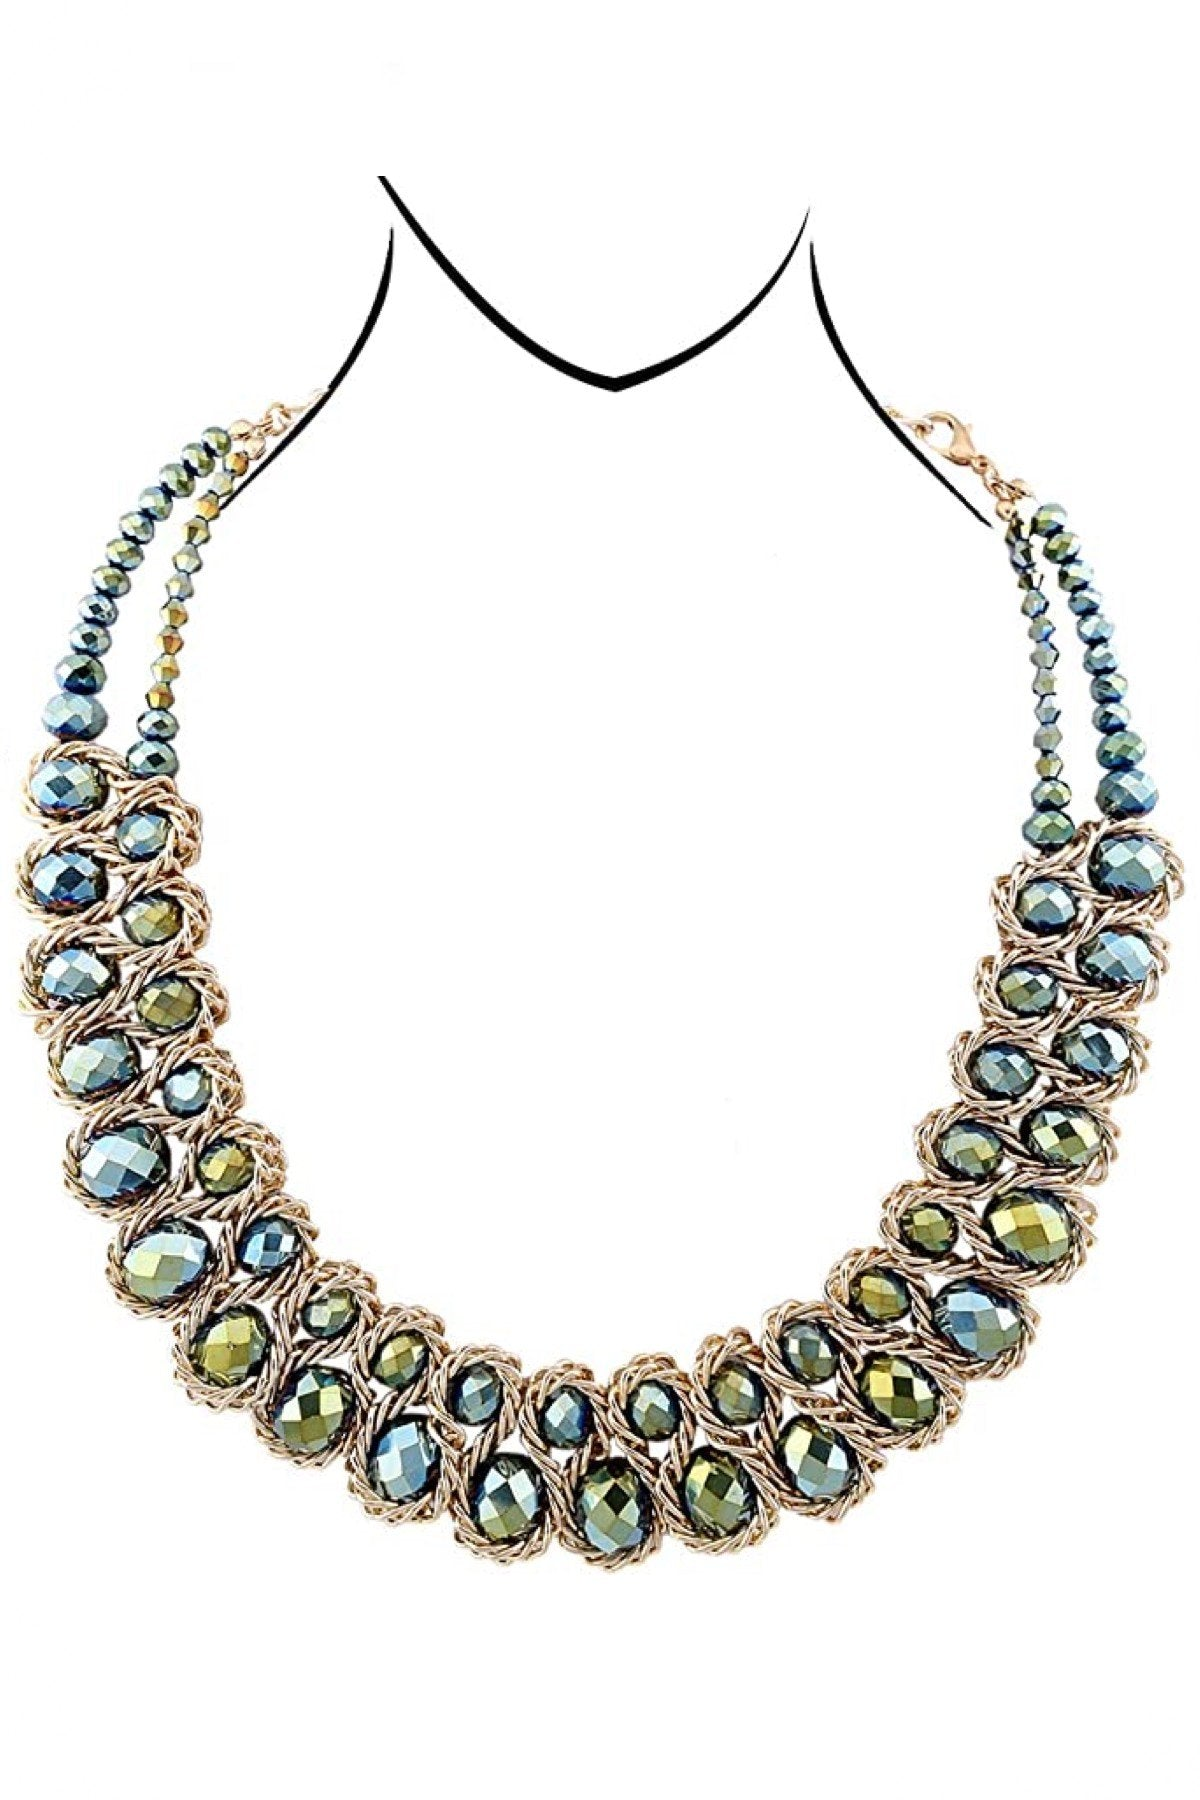 18K Gold Statement Multi Grey Crystal Necklace